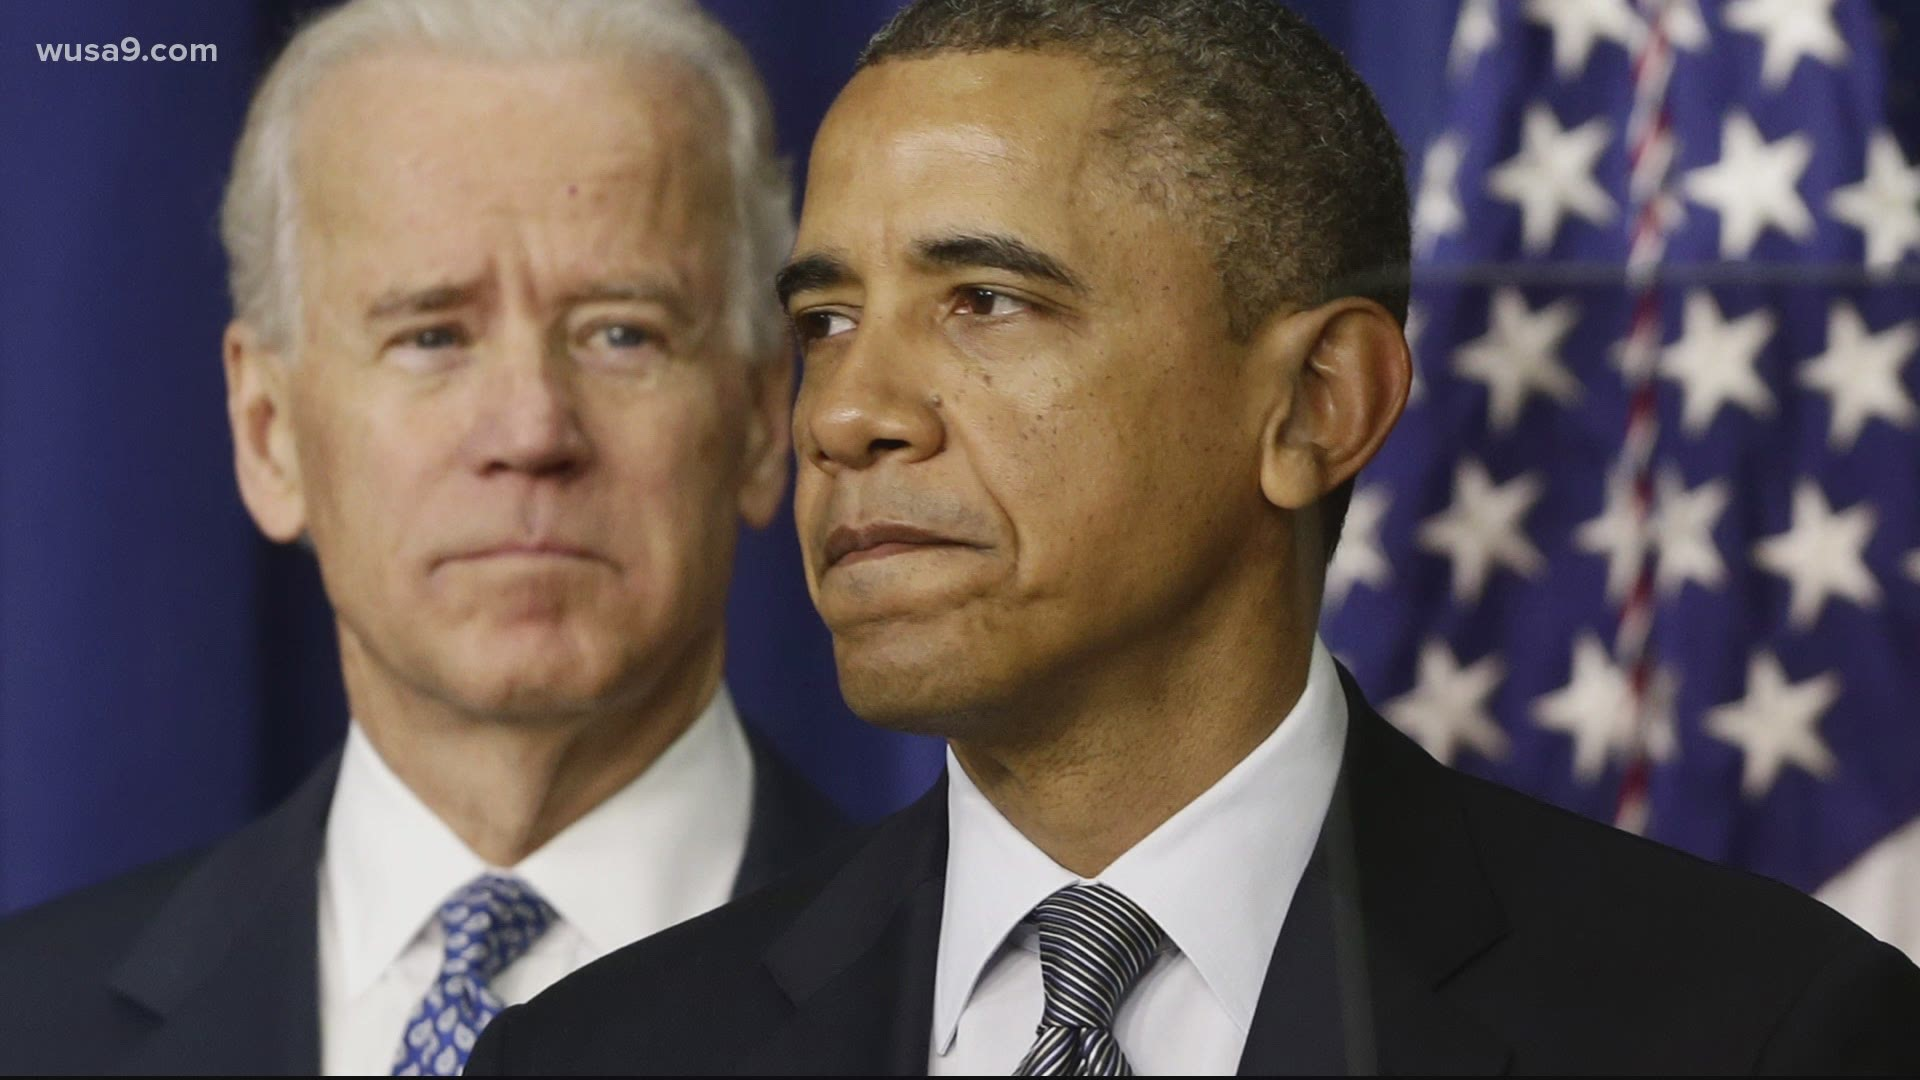 VERIFY: No, President Barack Obama can not serve as Biden's VP | wusa9.com